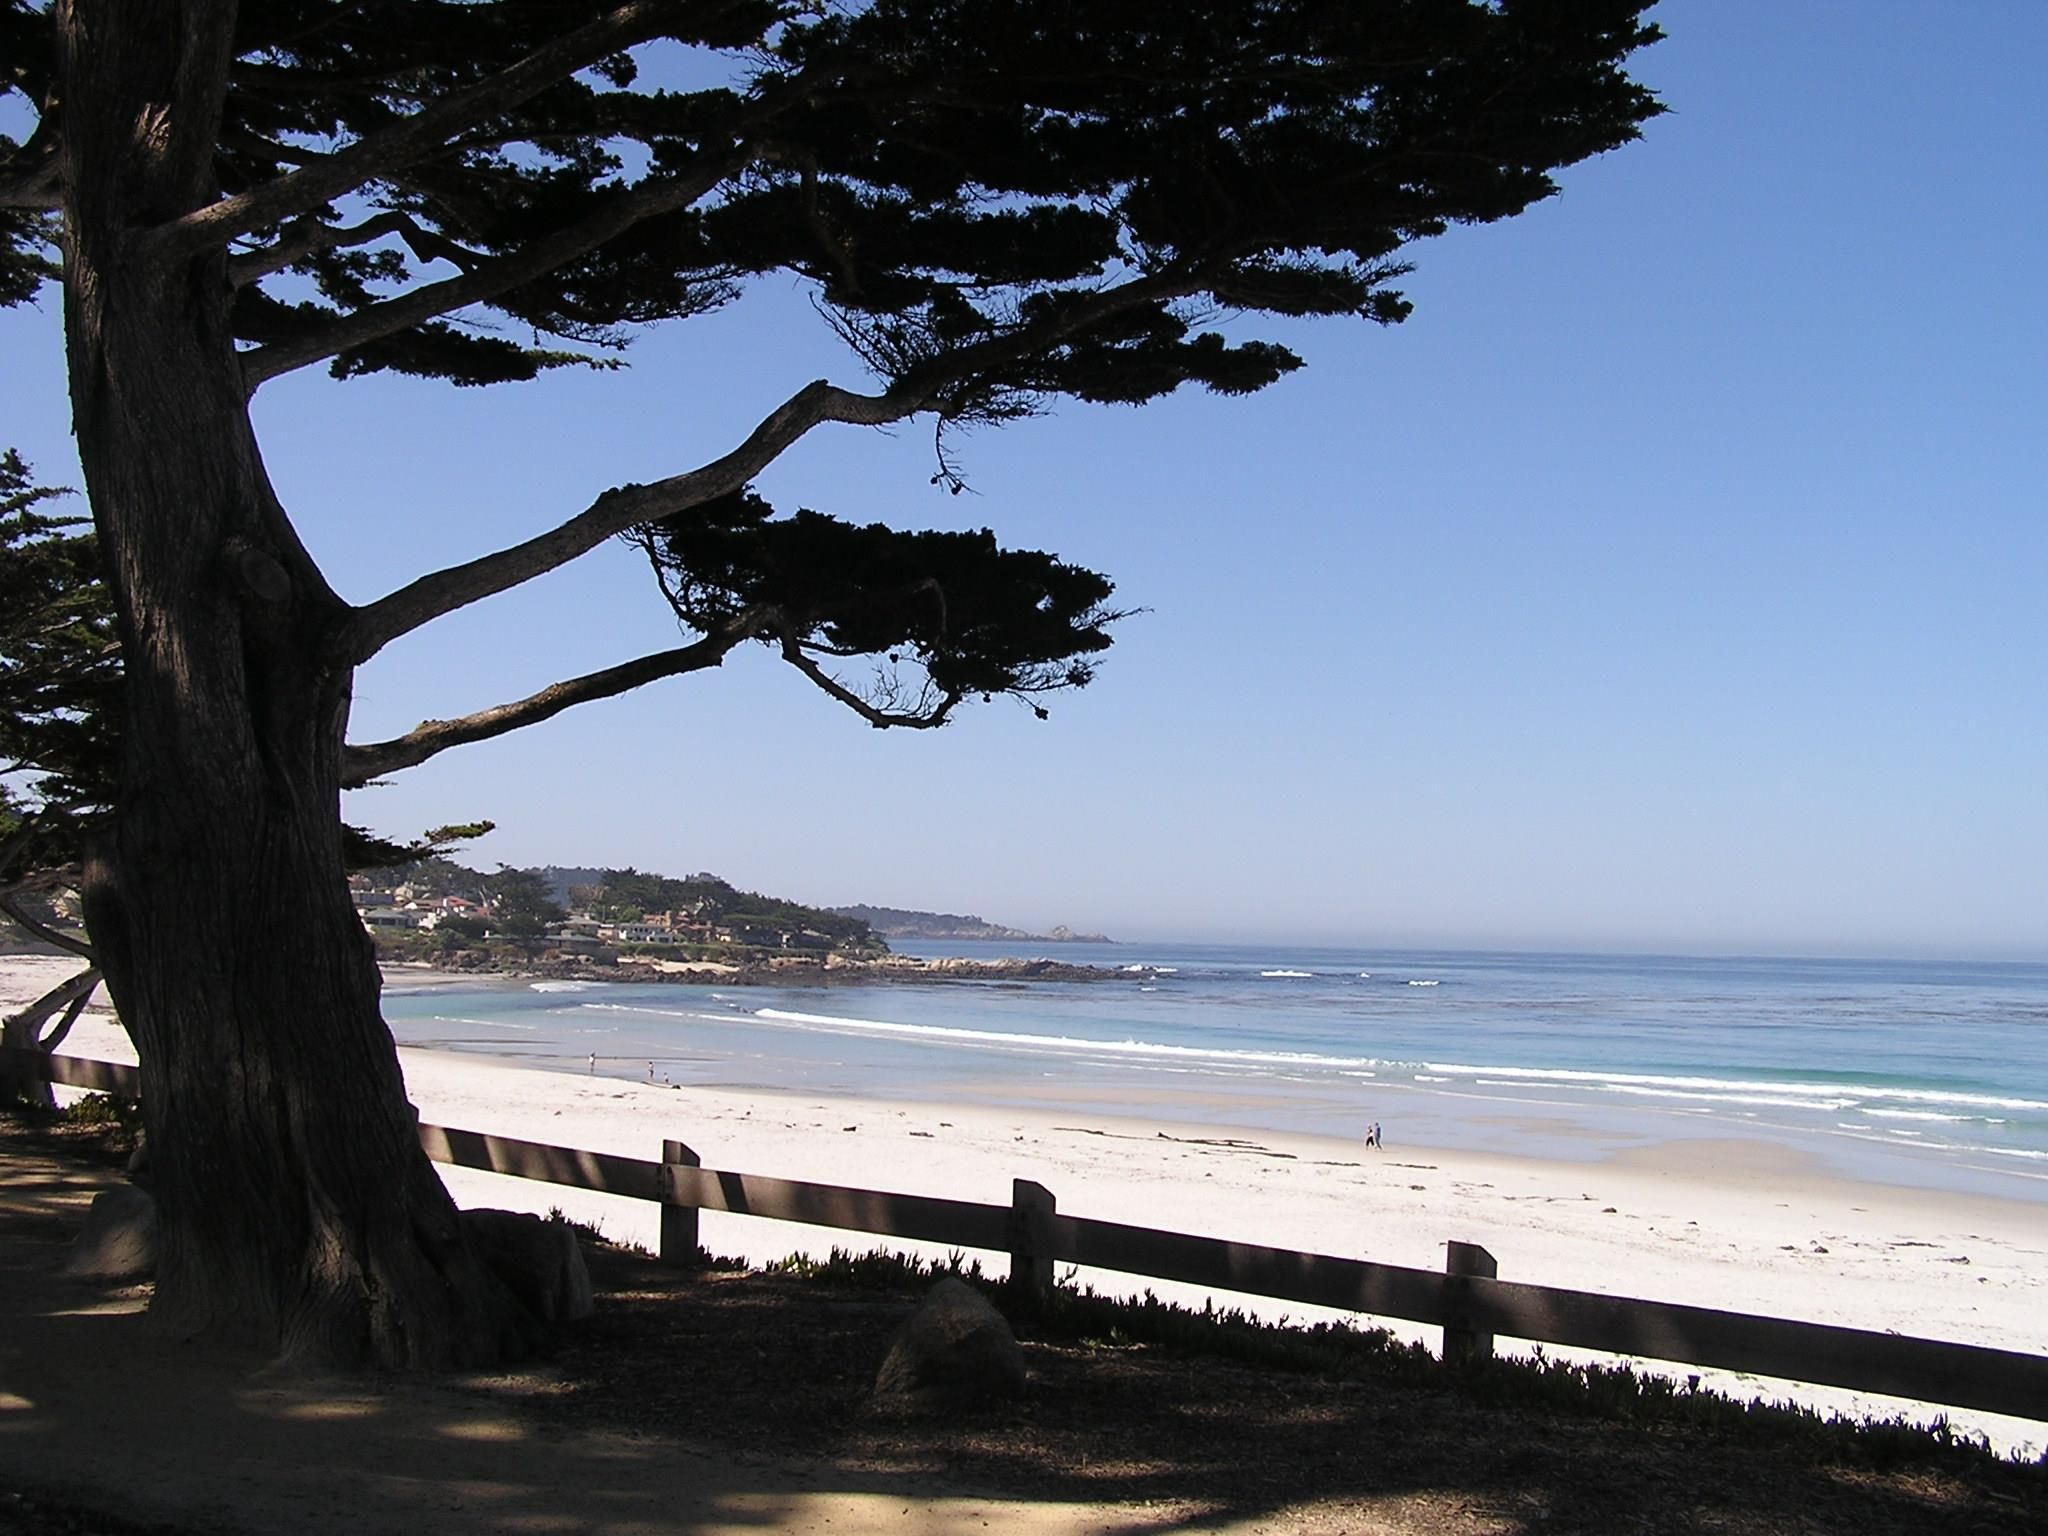 Sunny and 70 in Carmel. Come for sunset and stay for the weekend!